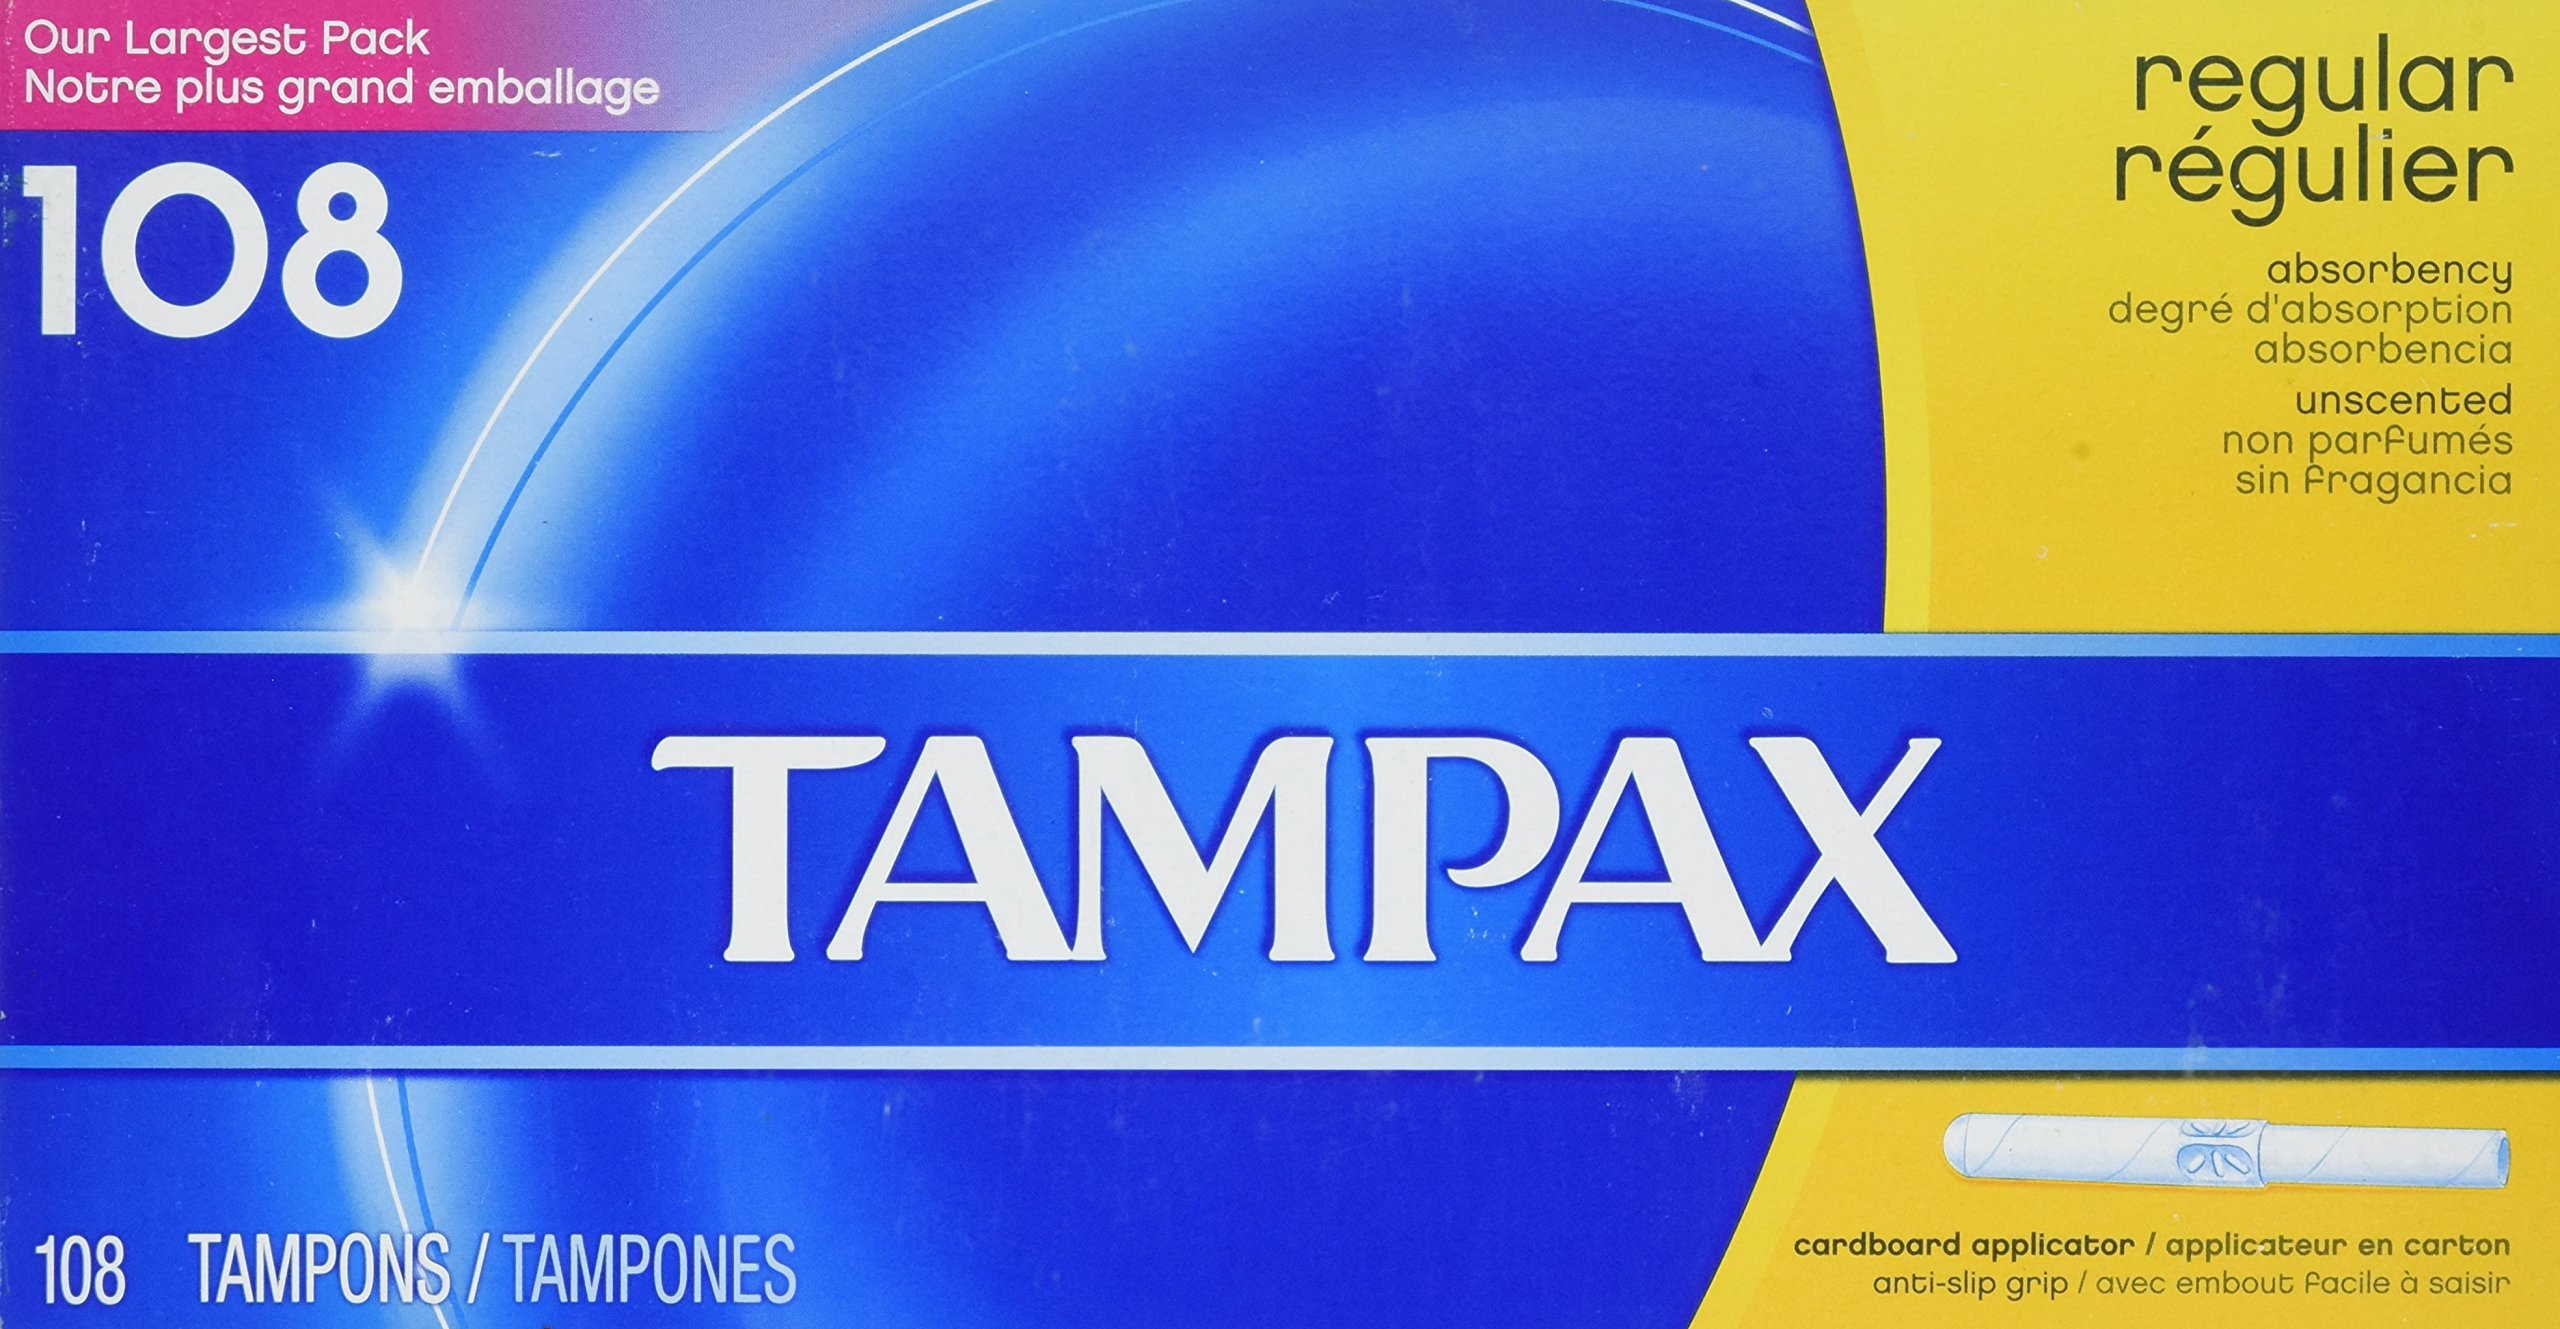 Tampax Tampons Regular Absorbency Unscented - 108 Tampons by Tampax